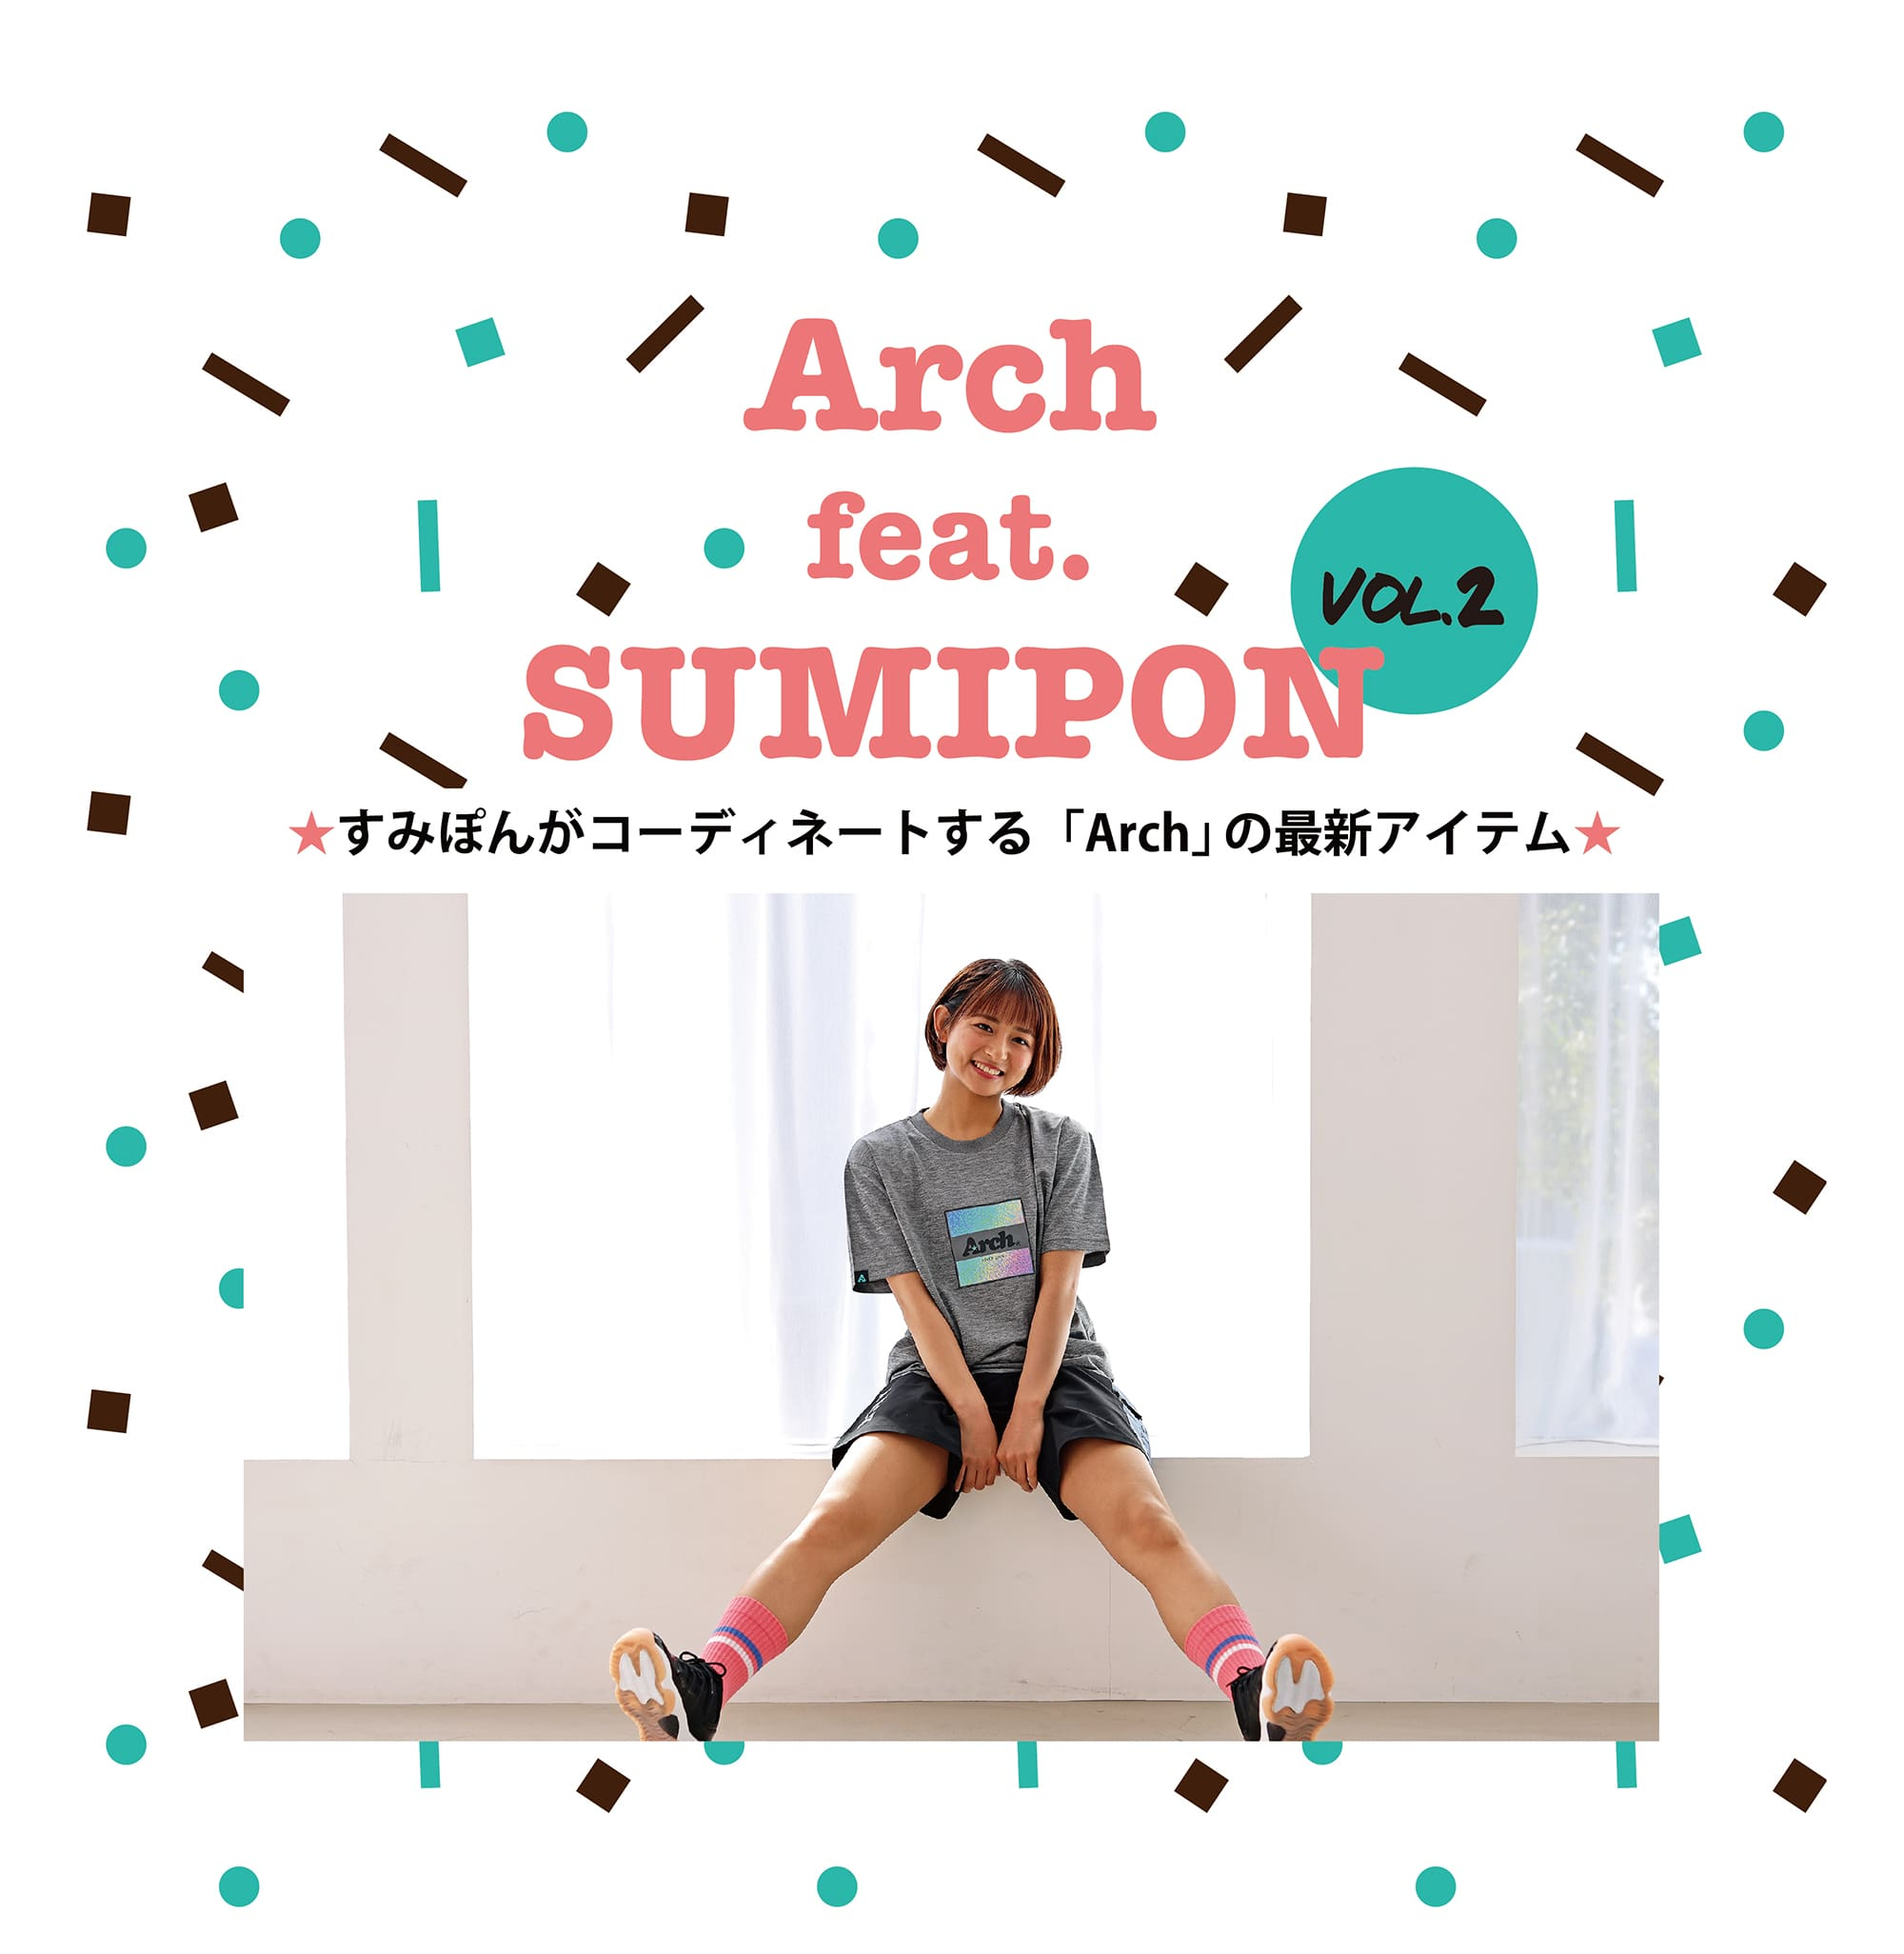 Arch feat. SUMIPON VOL.2